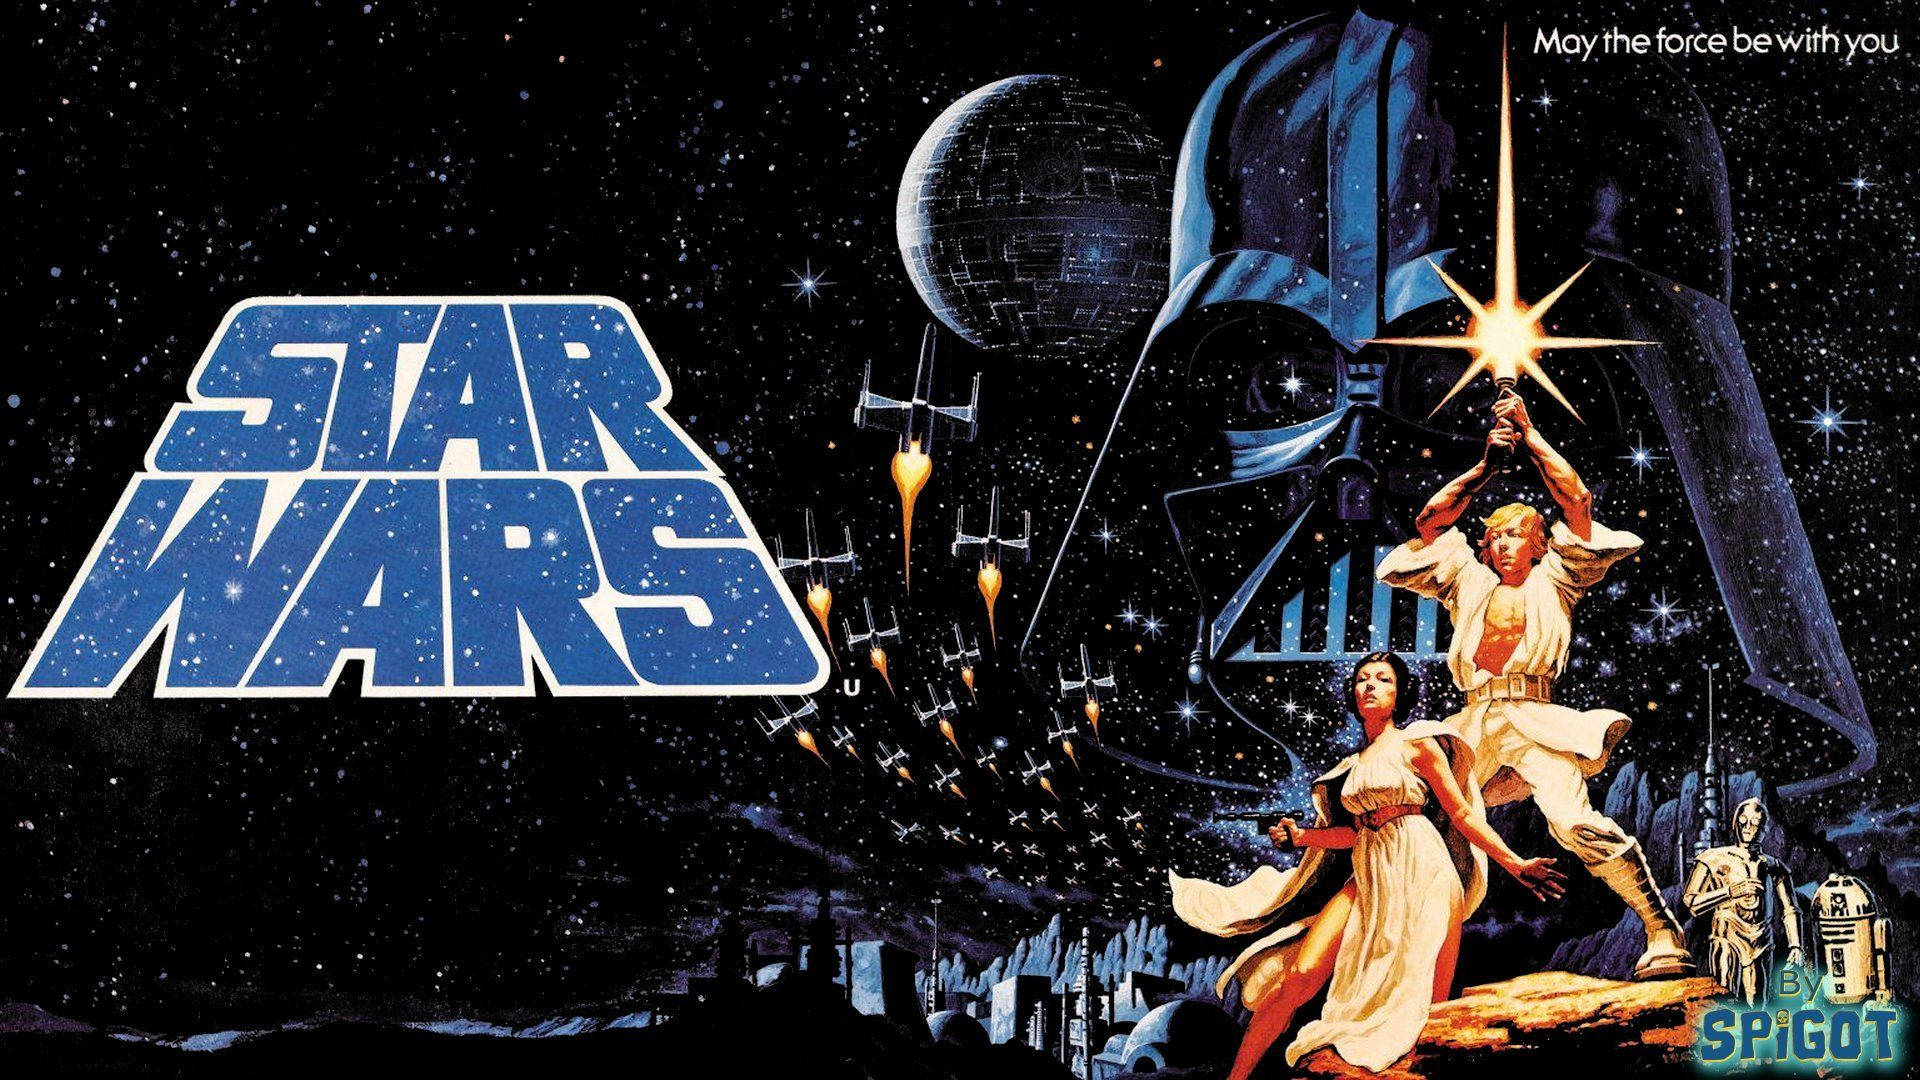 Posts About Star Wars On George Spigot S Blog Star Wars Wallpaper Star Wars Poster Star Wars Wallpaper Iphone